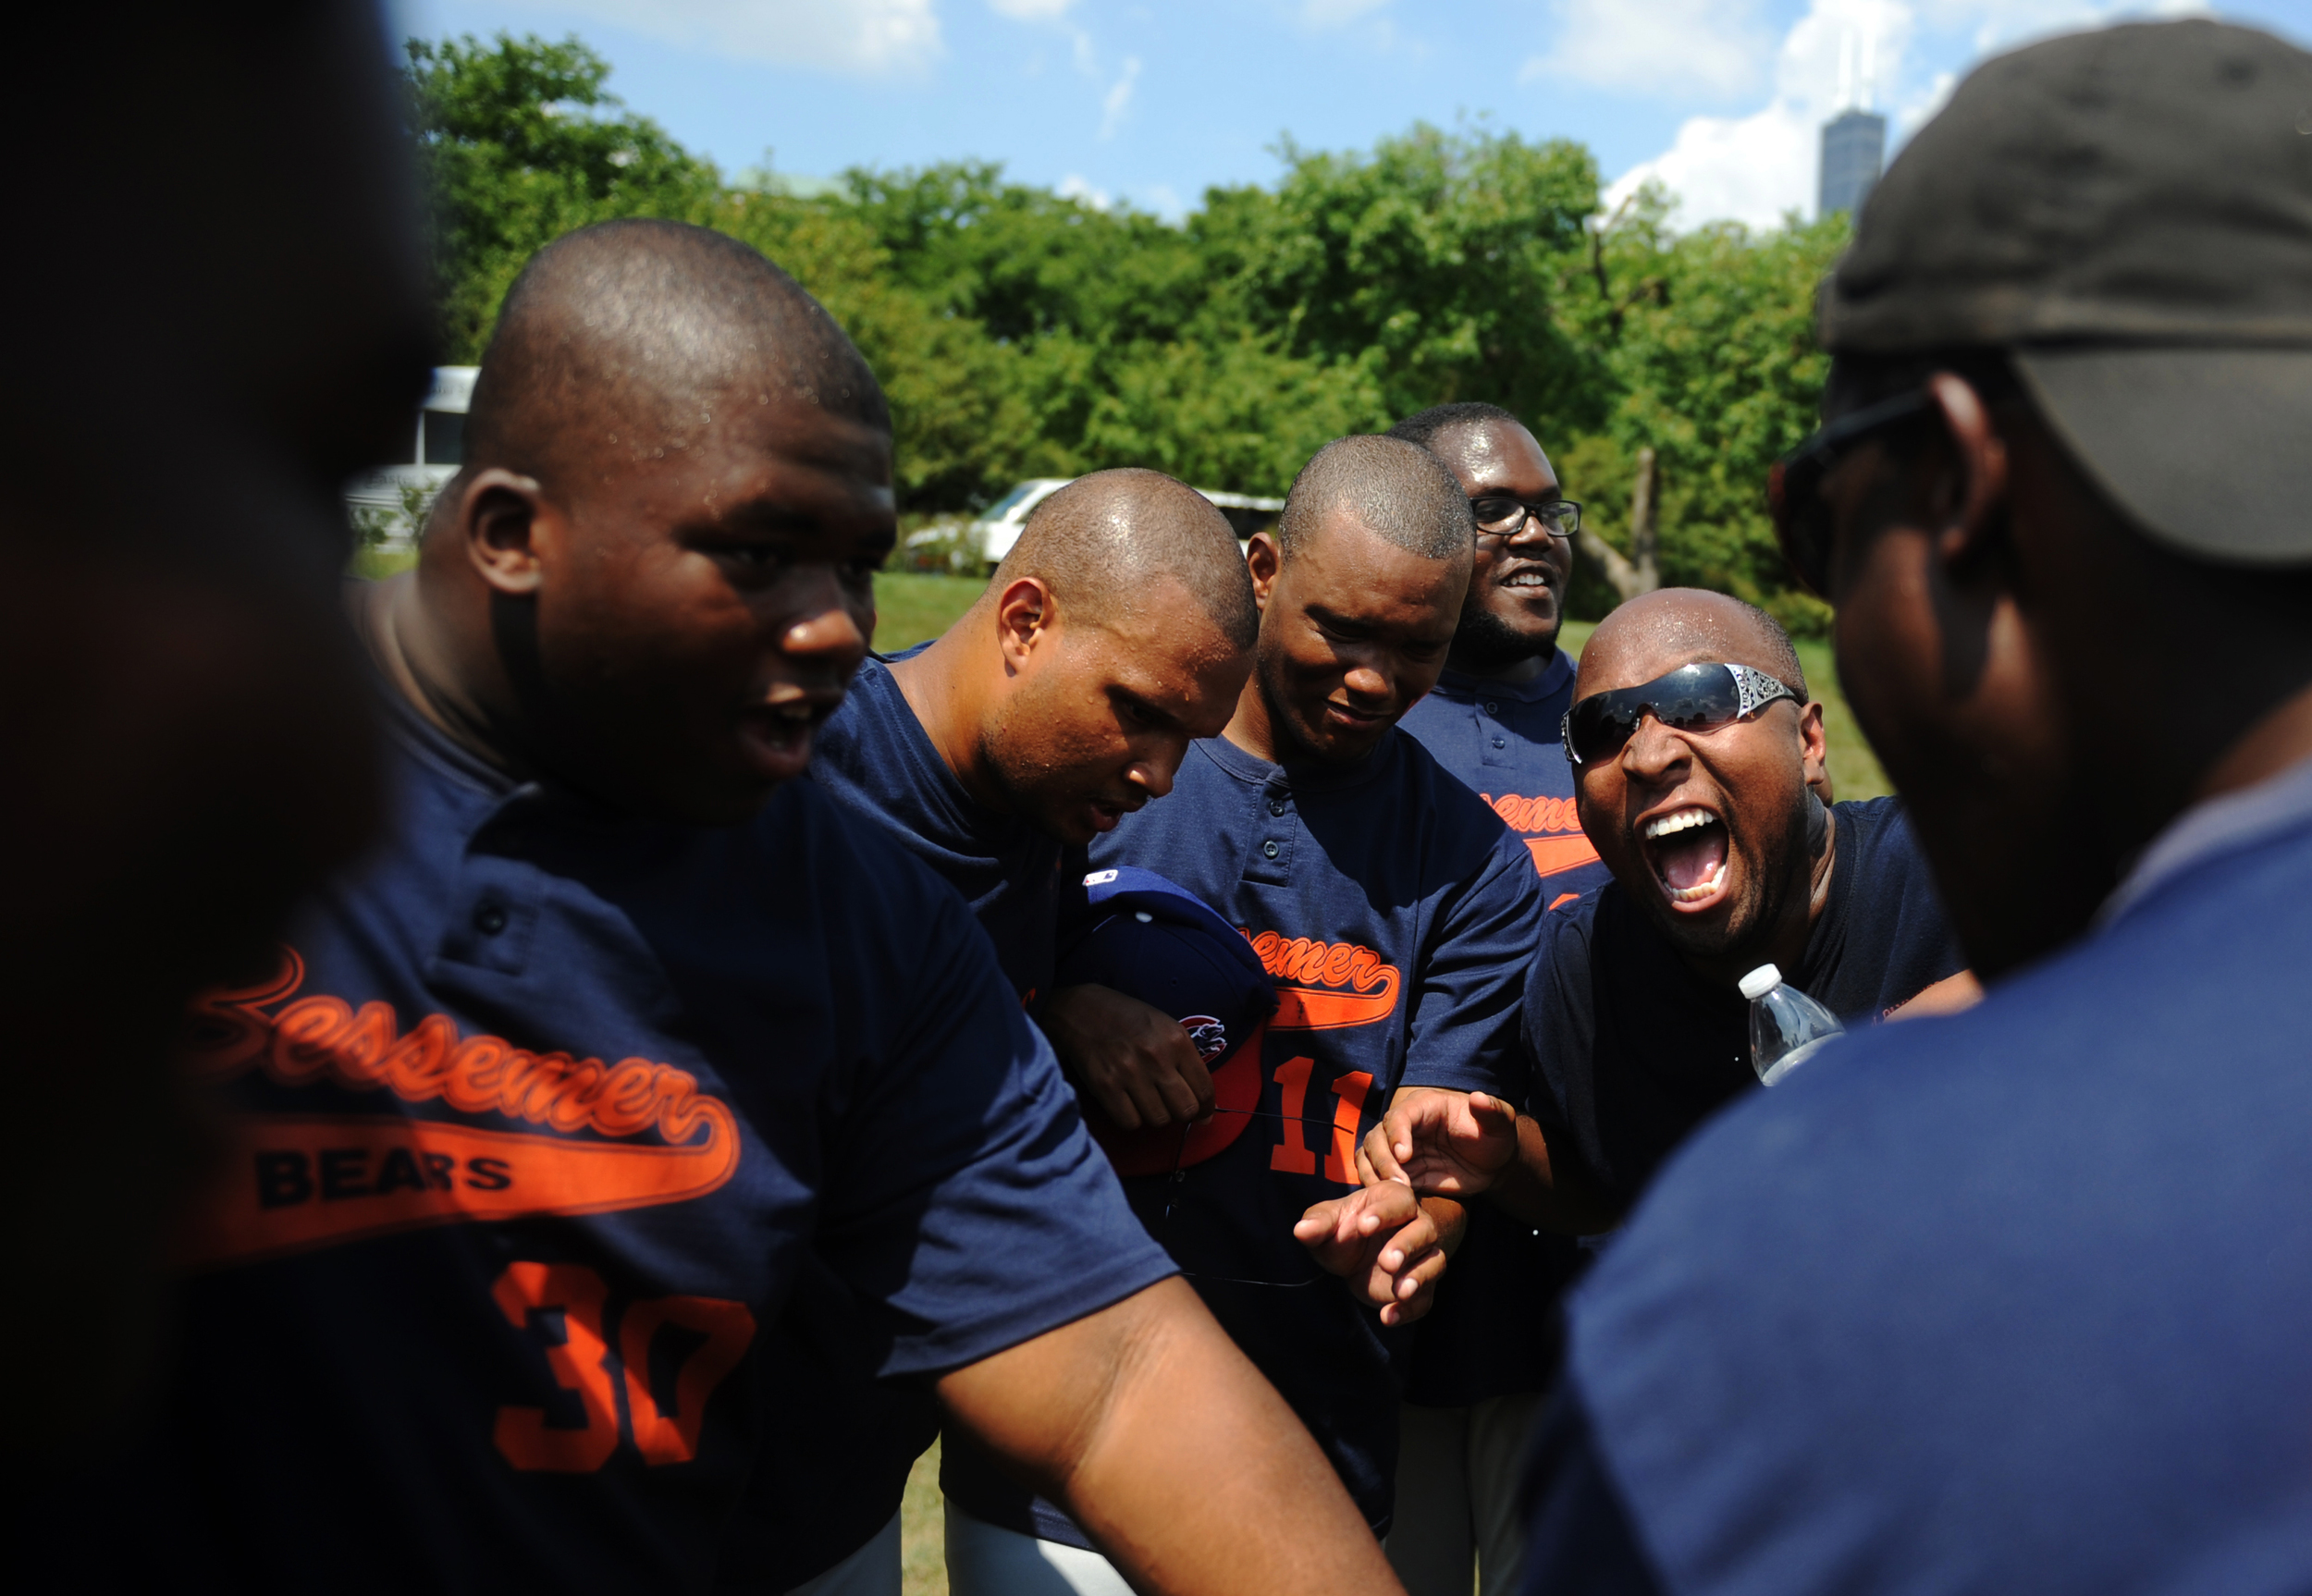 Members of the Bessemer Bears team gather after winning their game at the 45th Anniversary of the Chicago Special Olympics held in Grant Park on Thursday, July 18, 2013.